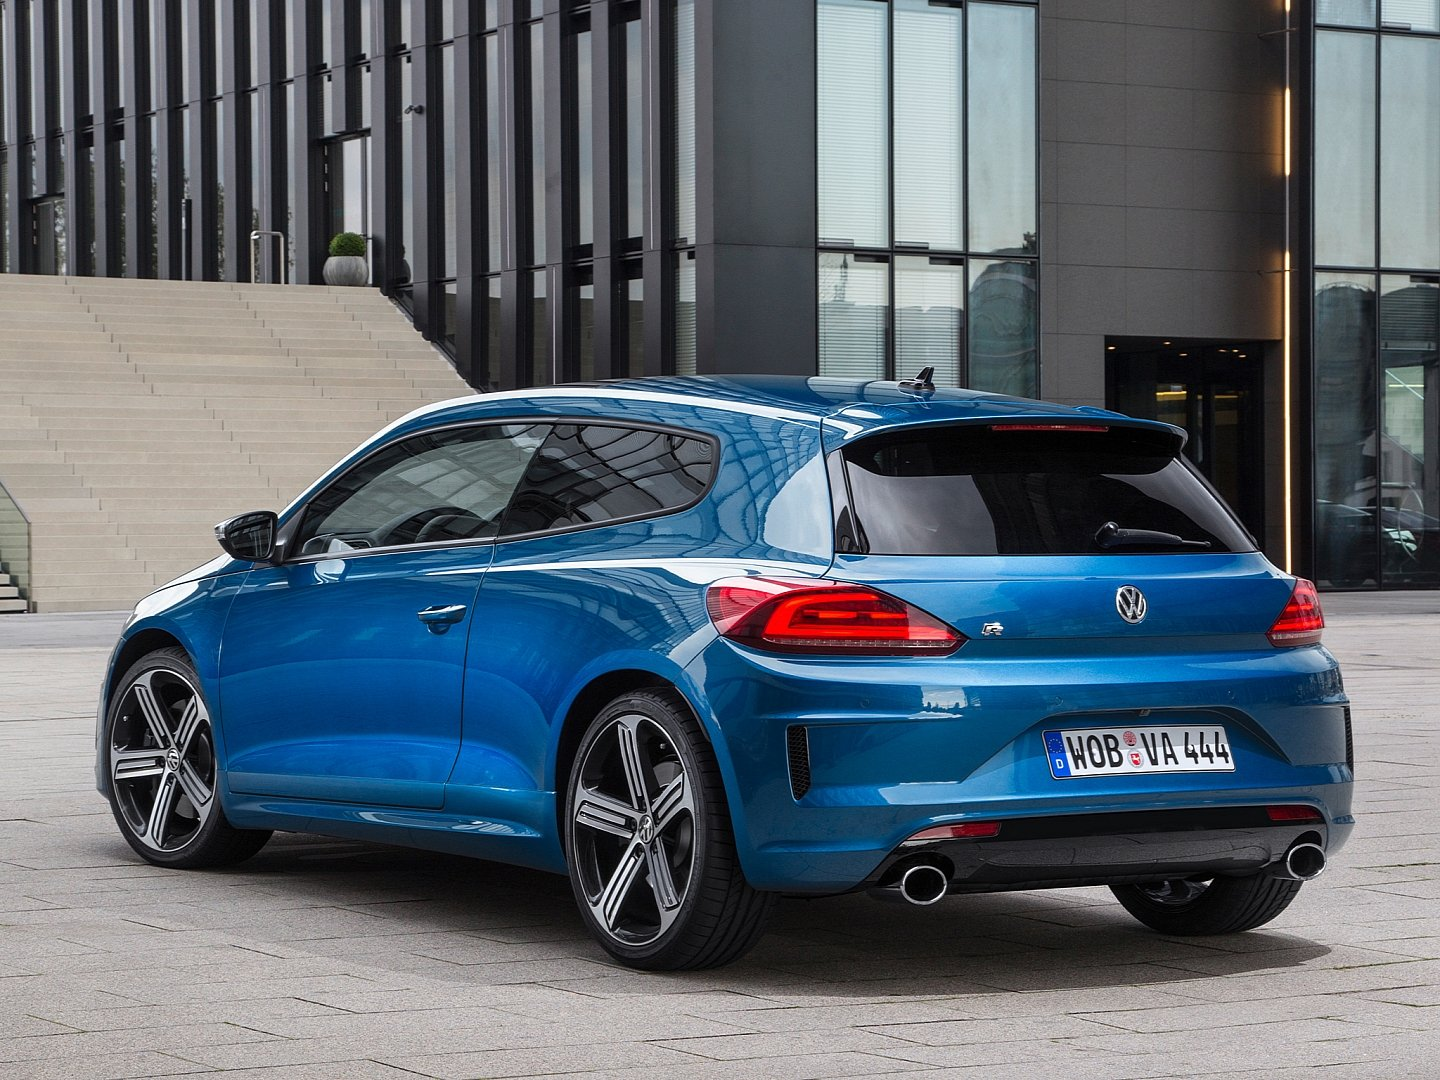 scirocco-radditional-20-ps-accelerates-06-seconds-faster-to-100-km-h-than-its-predecessor-1080p-12